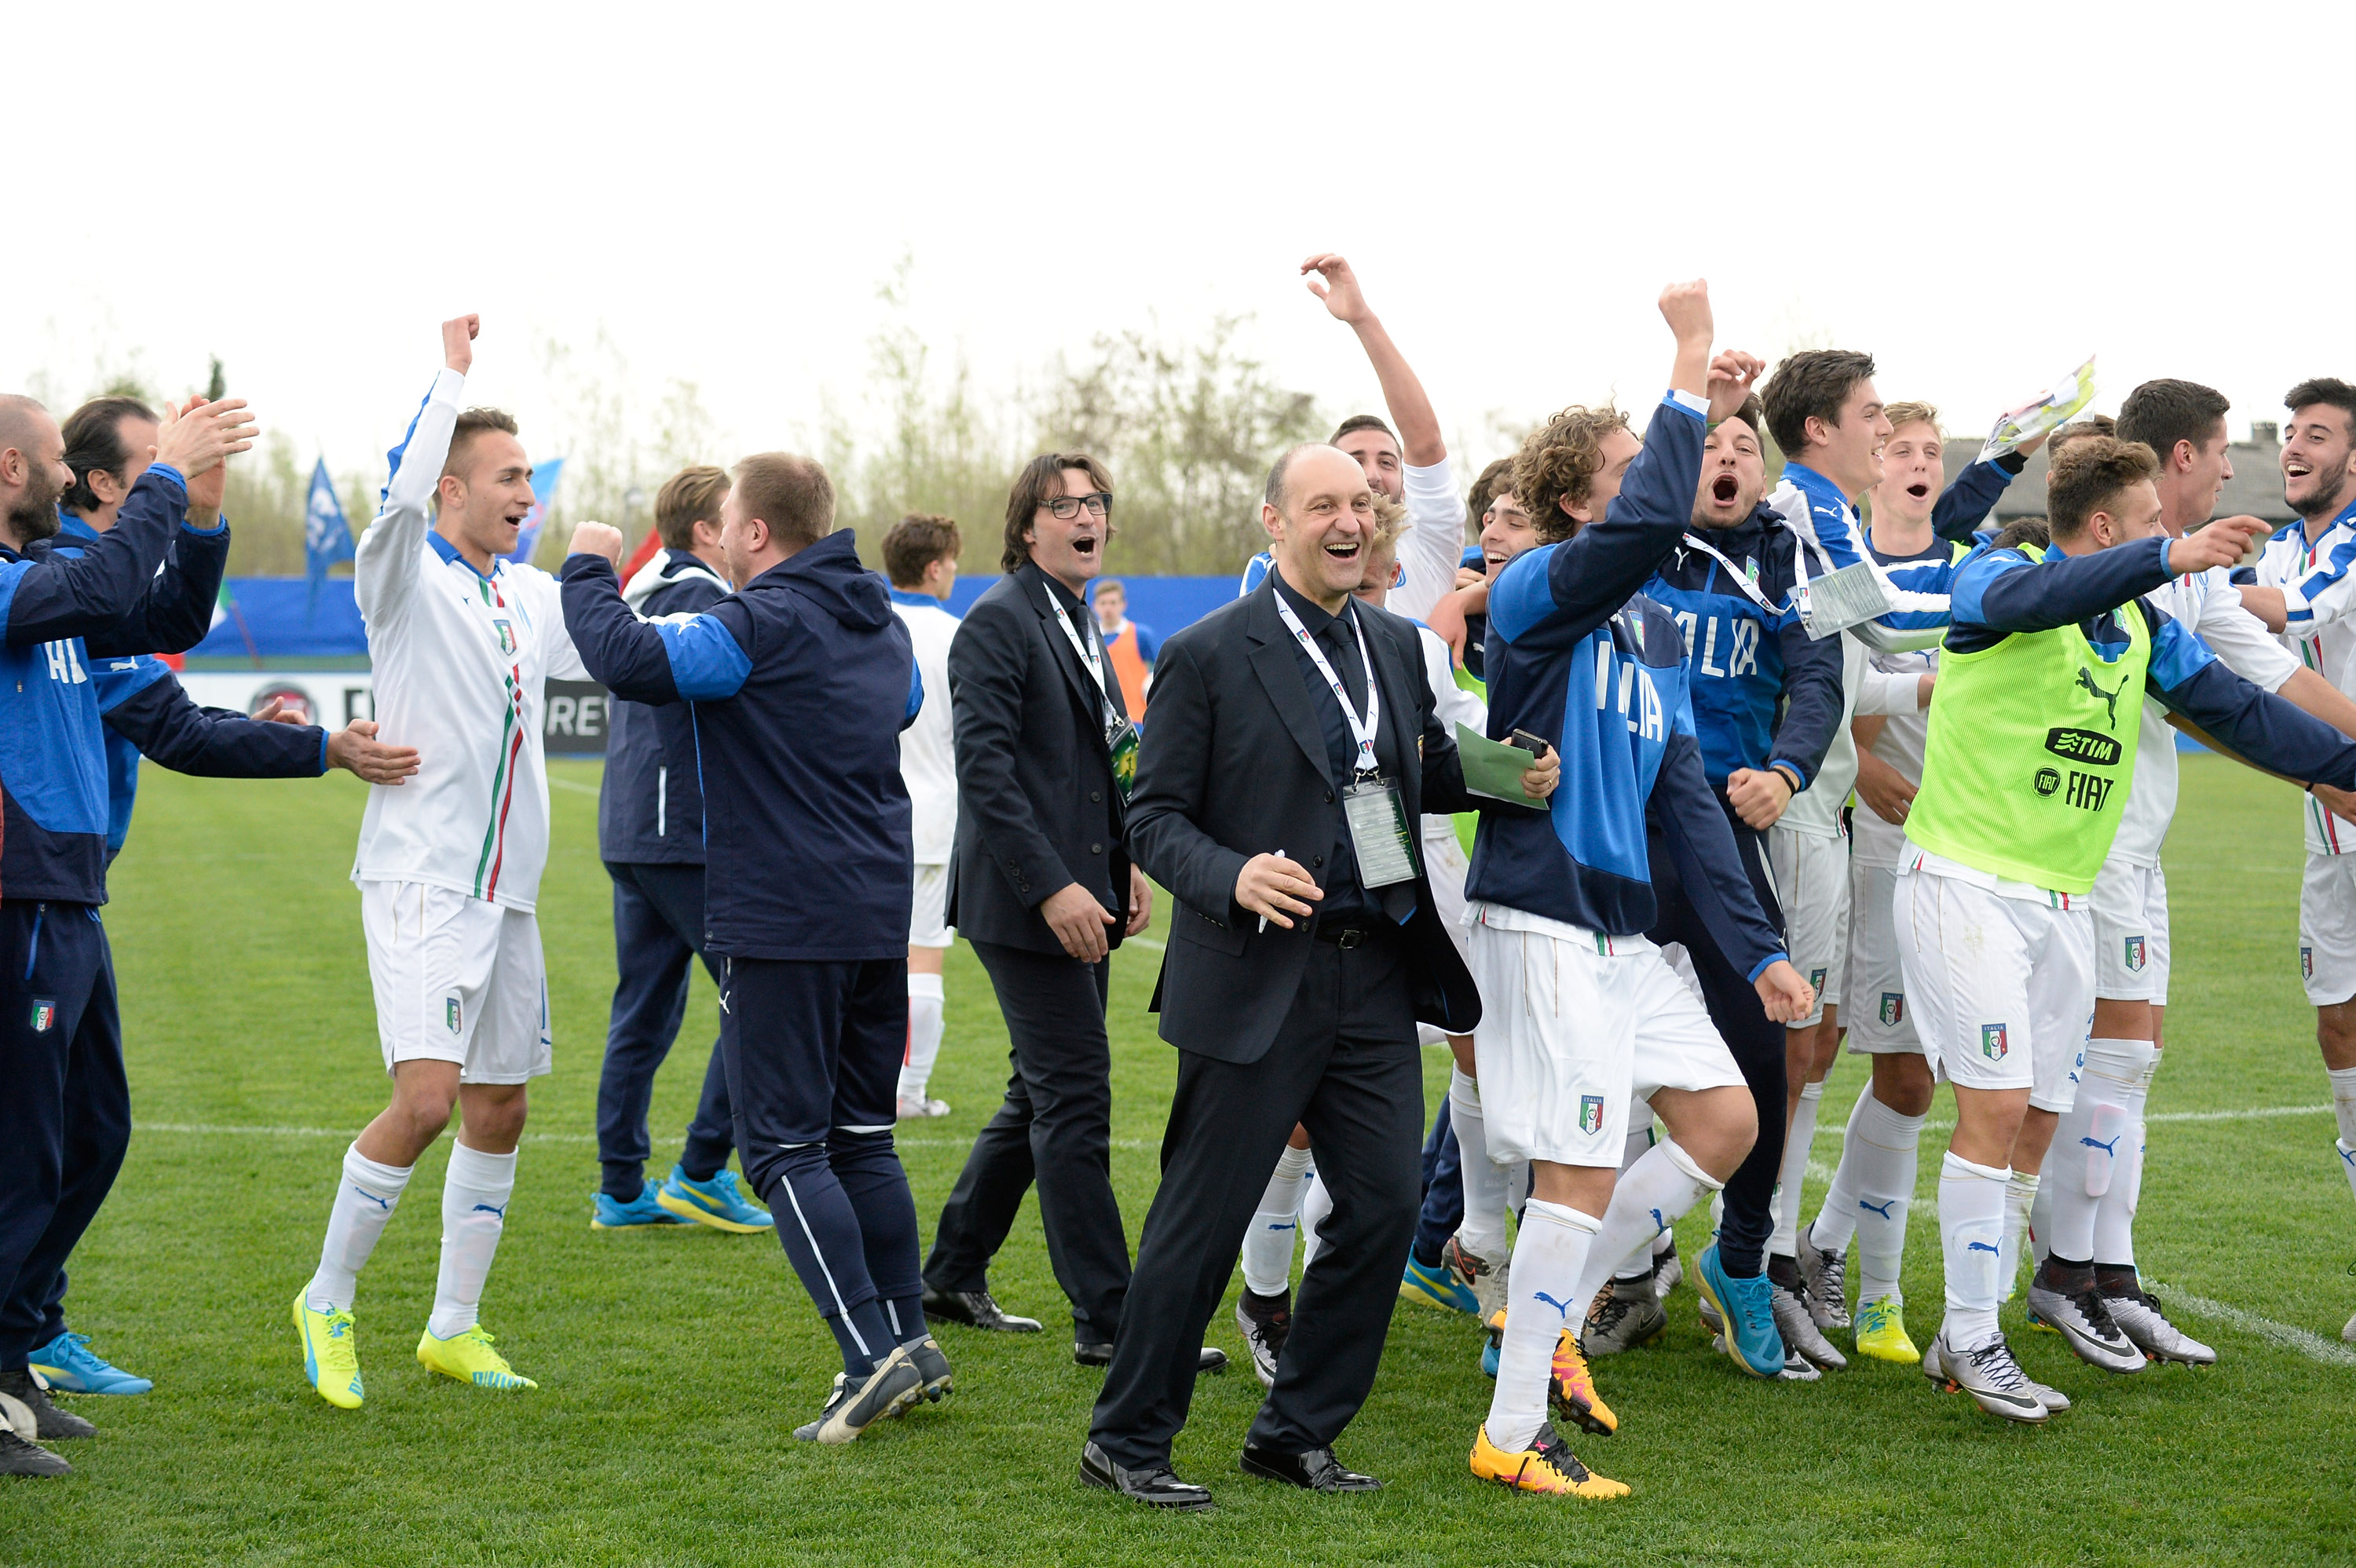 CALDOGNO, ITALY - MARCH 30: Italy U19 players celebrate after the UEFA European U19 Championship Elite Round match Italy and Turkey at Stadio Comunale on March 30, 2016 in Caldogno, Italy. (Photo by Dino Panato/Getty Images)